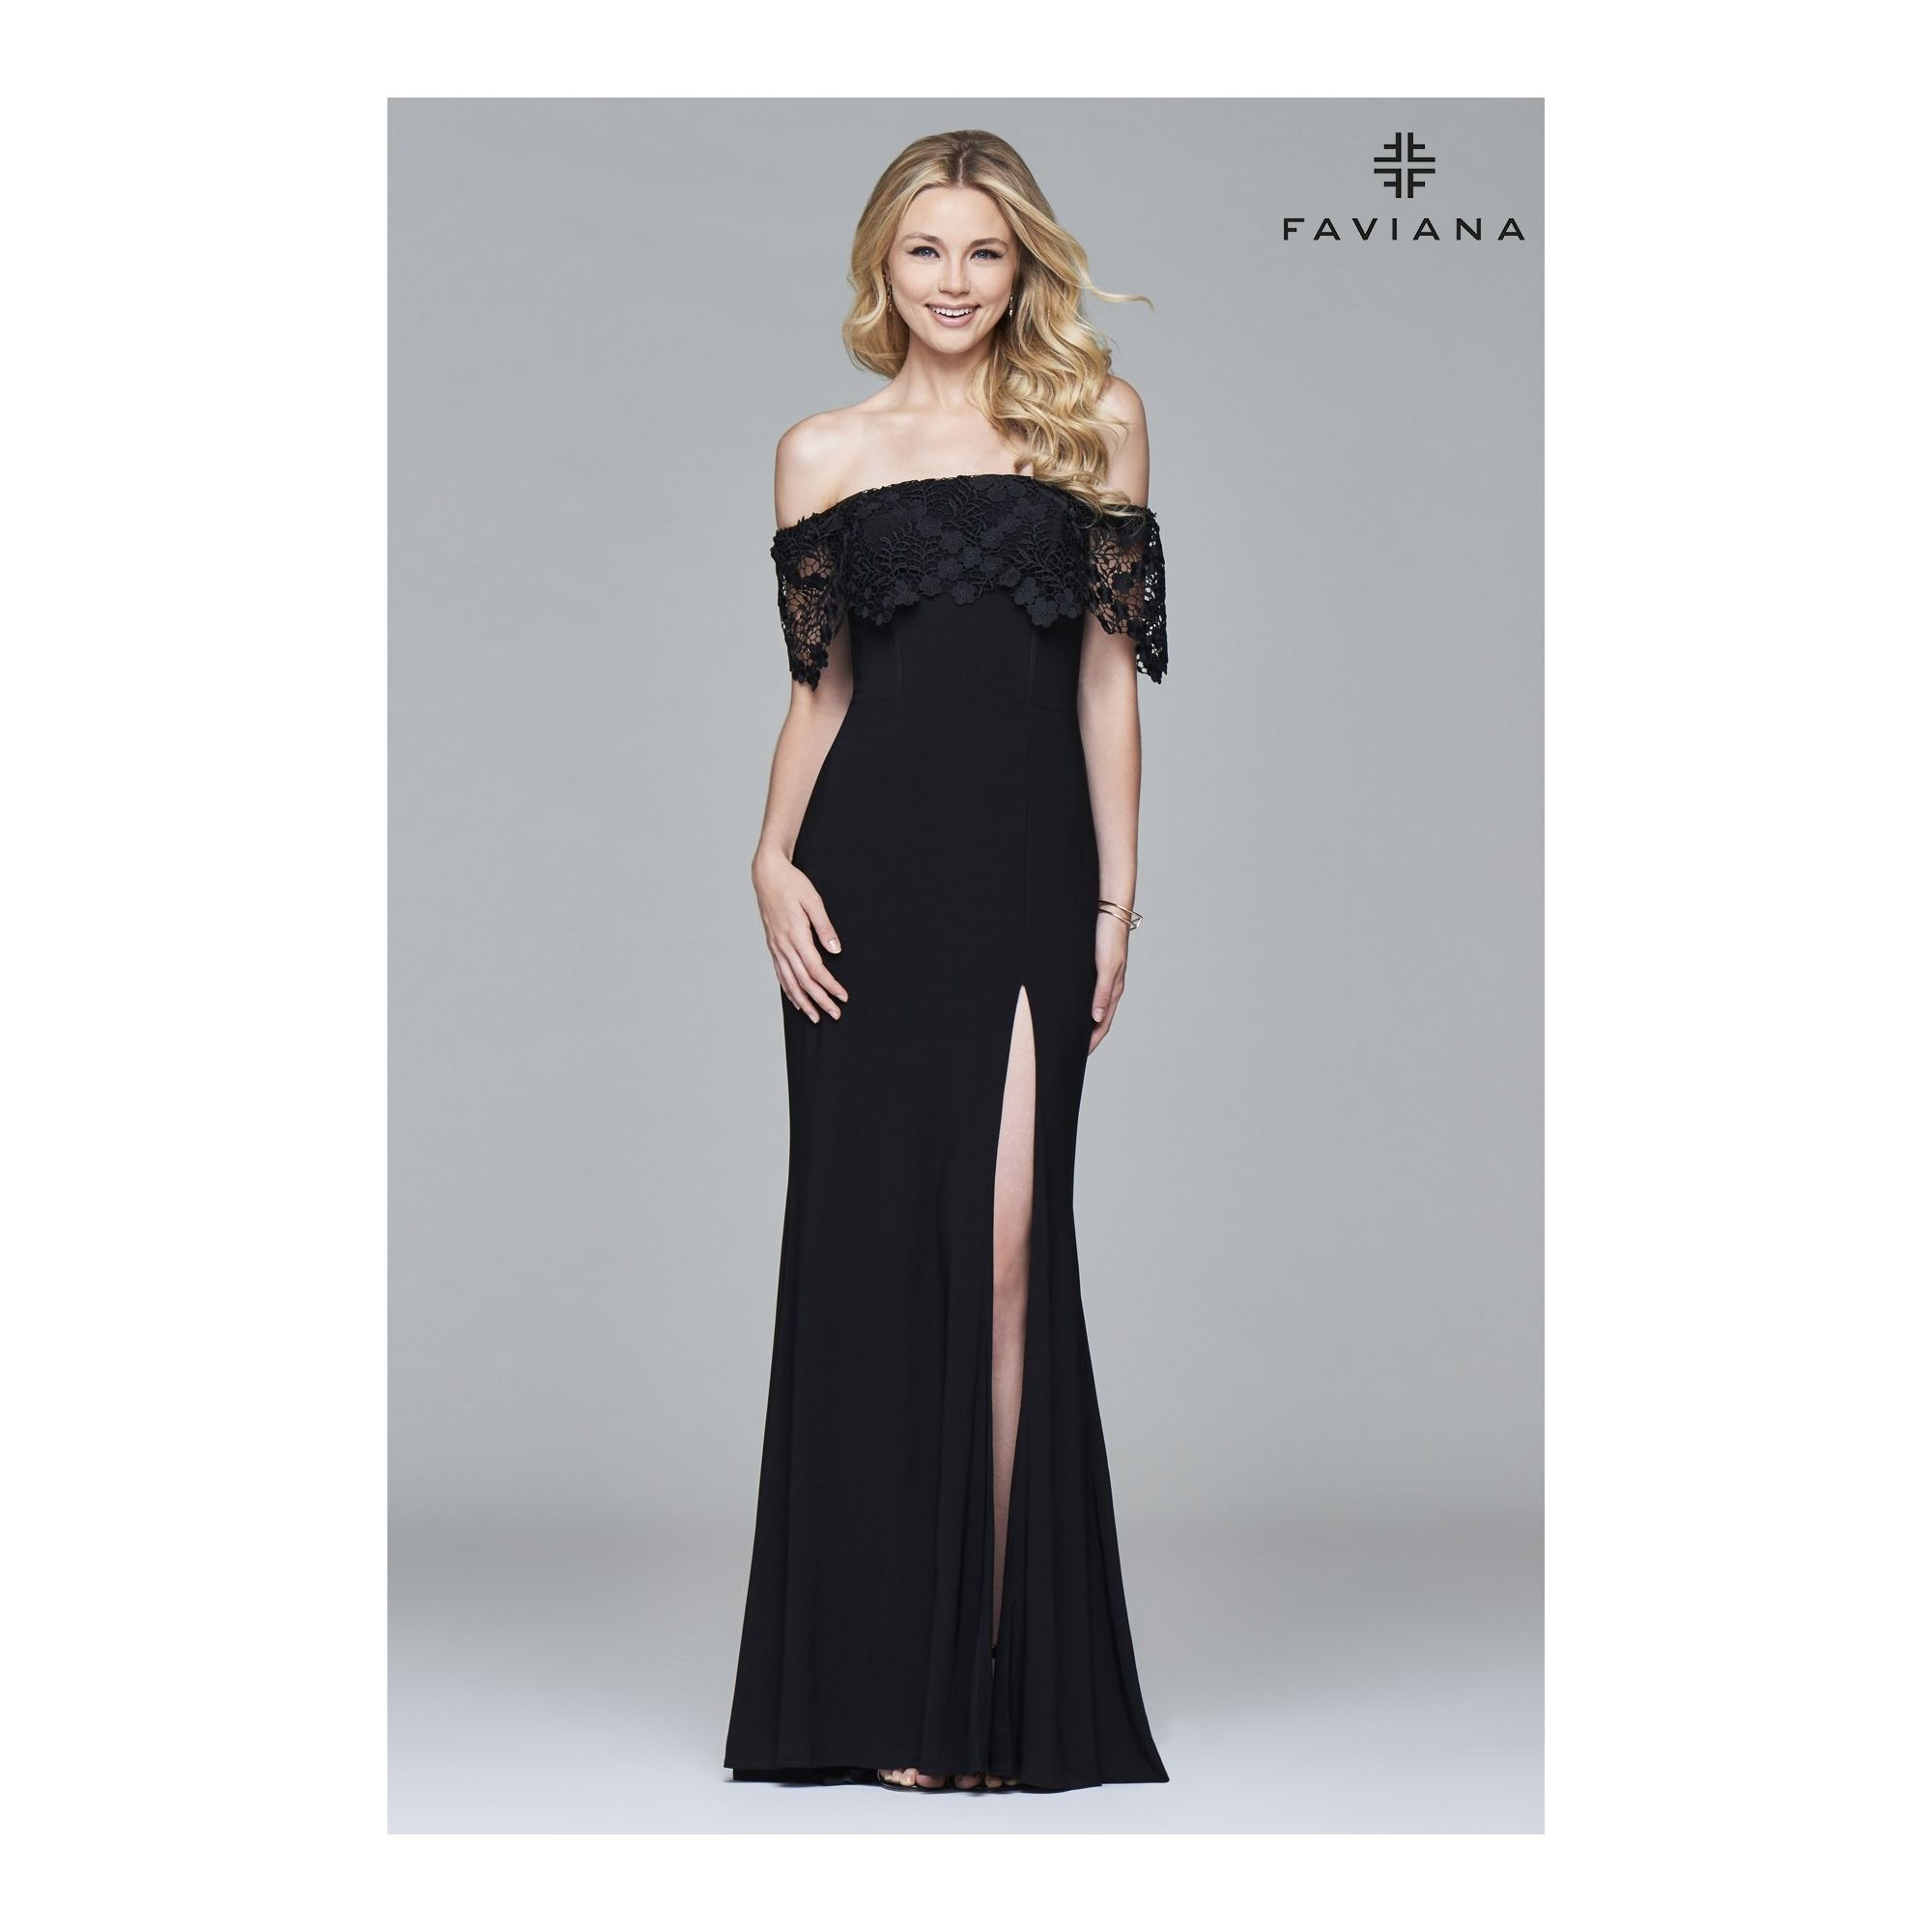 5b3cdae02b8f Designer Evening Dresses - Nini Dress